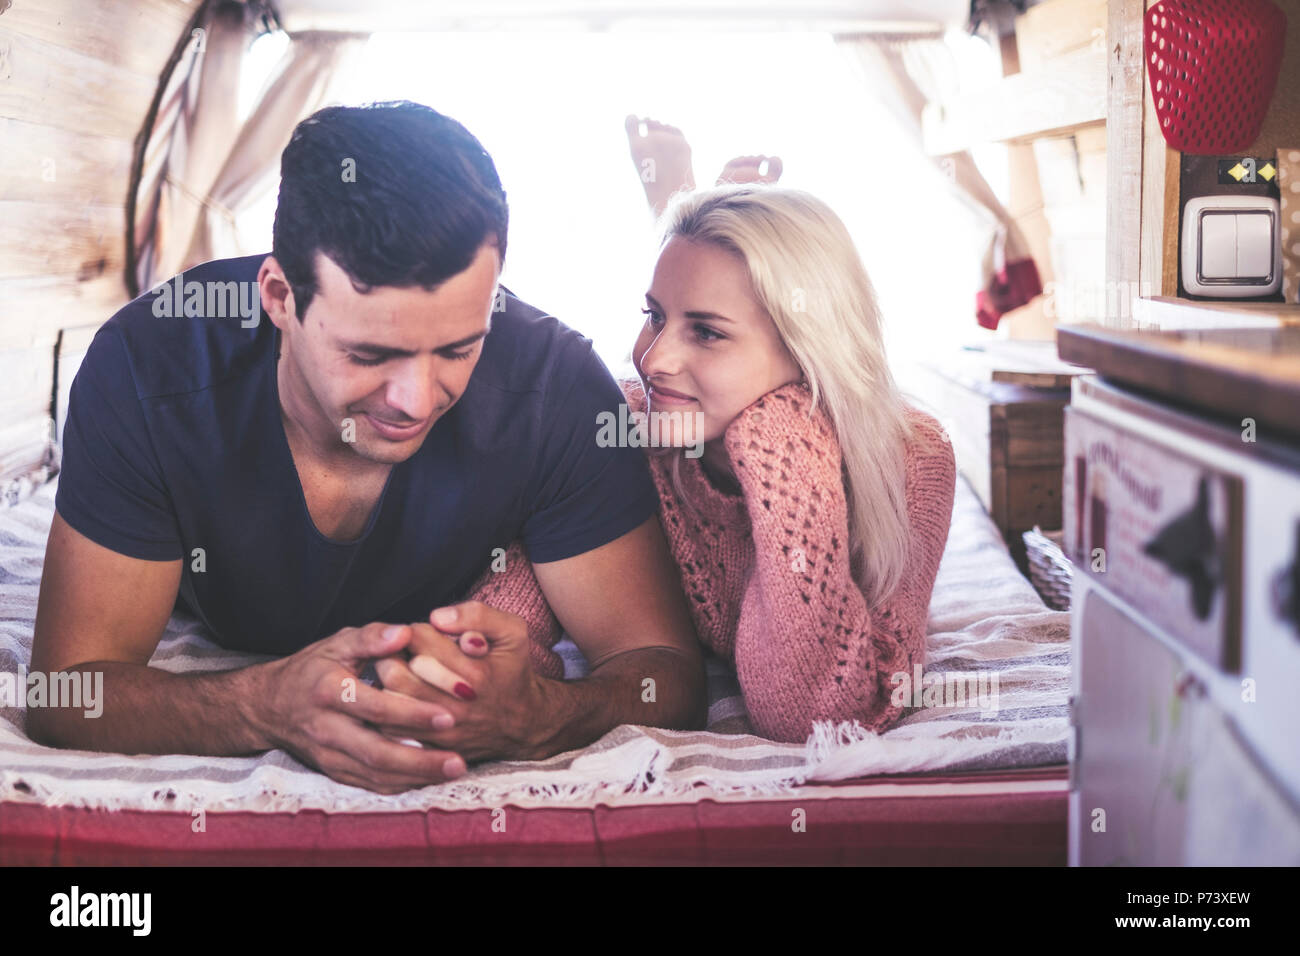 caucasian couple in love and romantic scene inside an old vintage camper ready to travel and have a vacation together with happiness and joy. blonde b - Stock Image